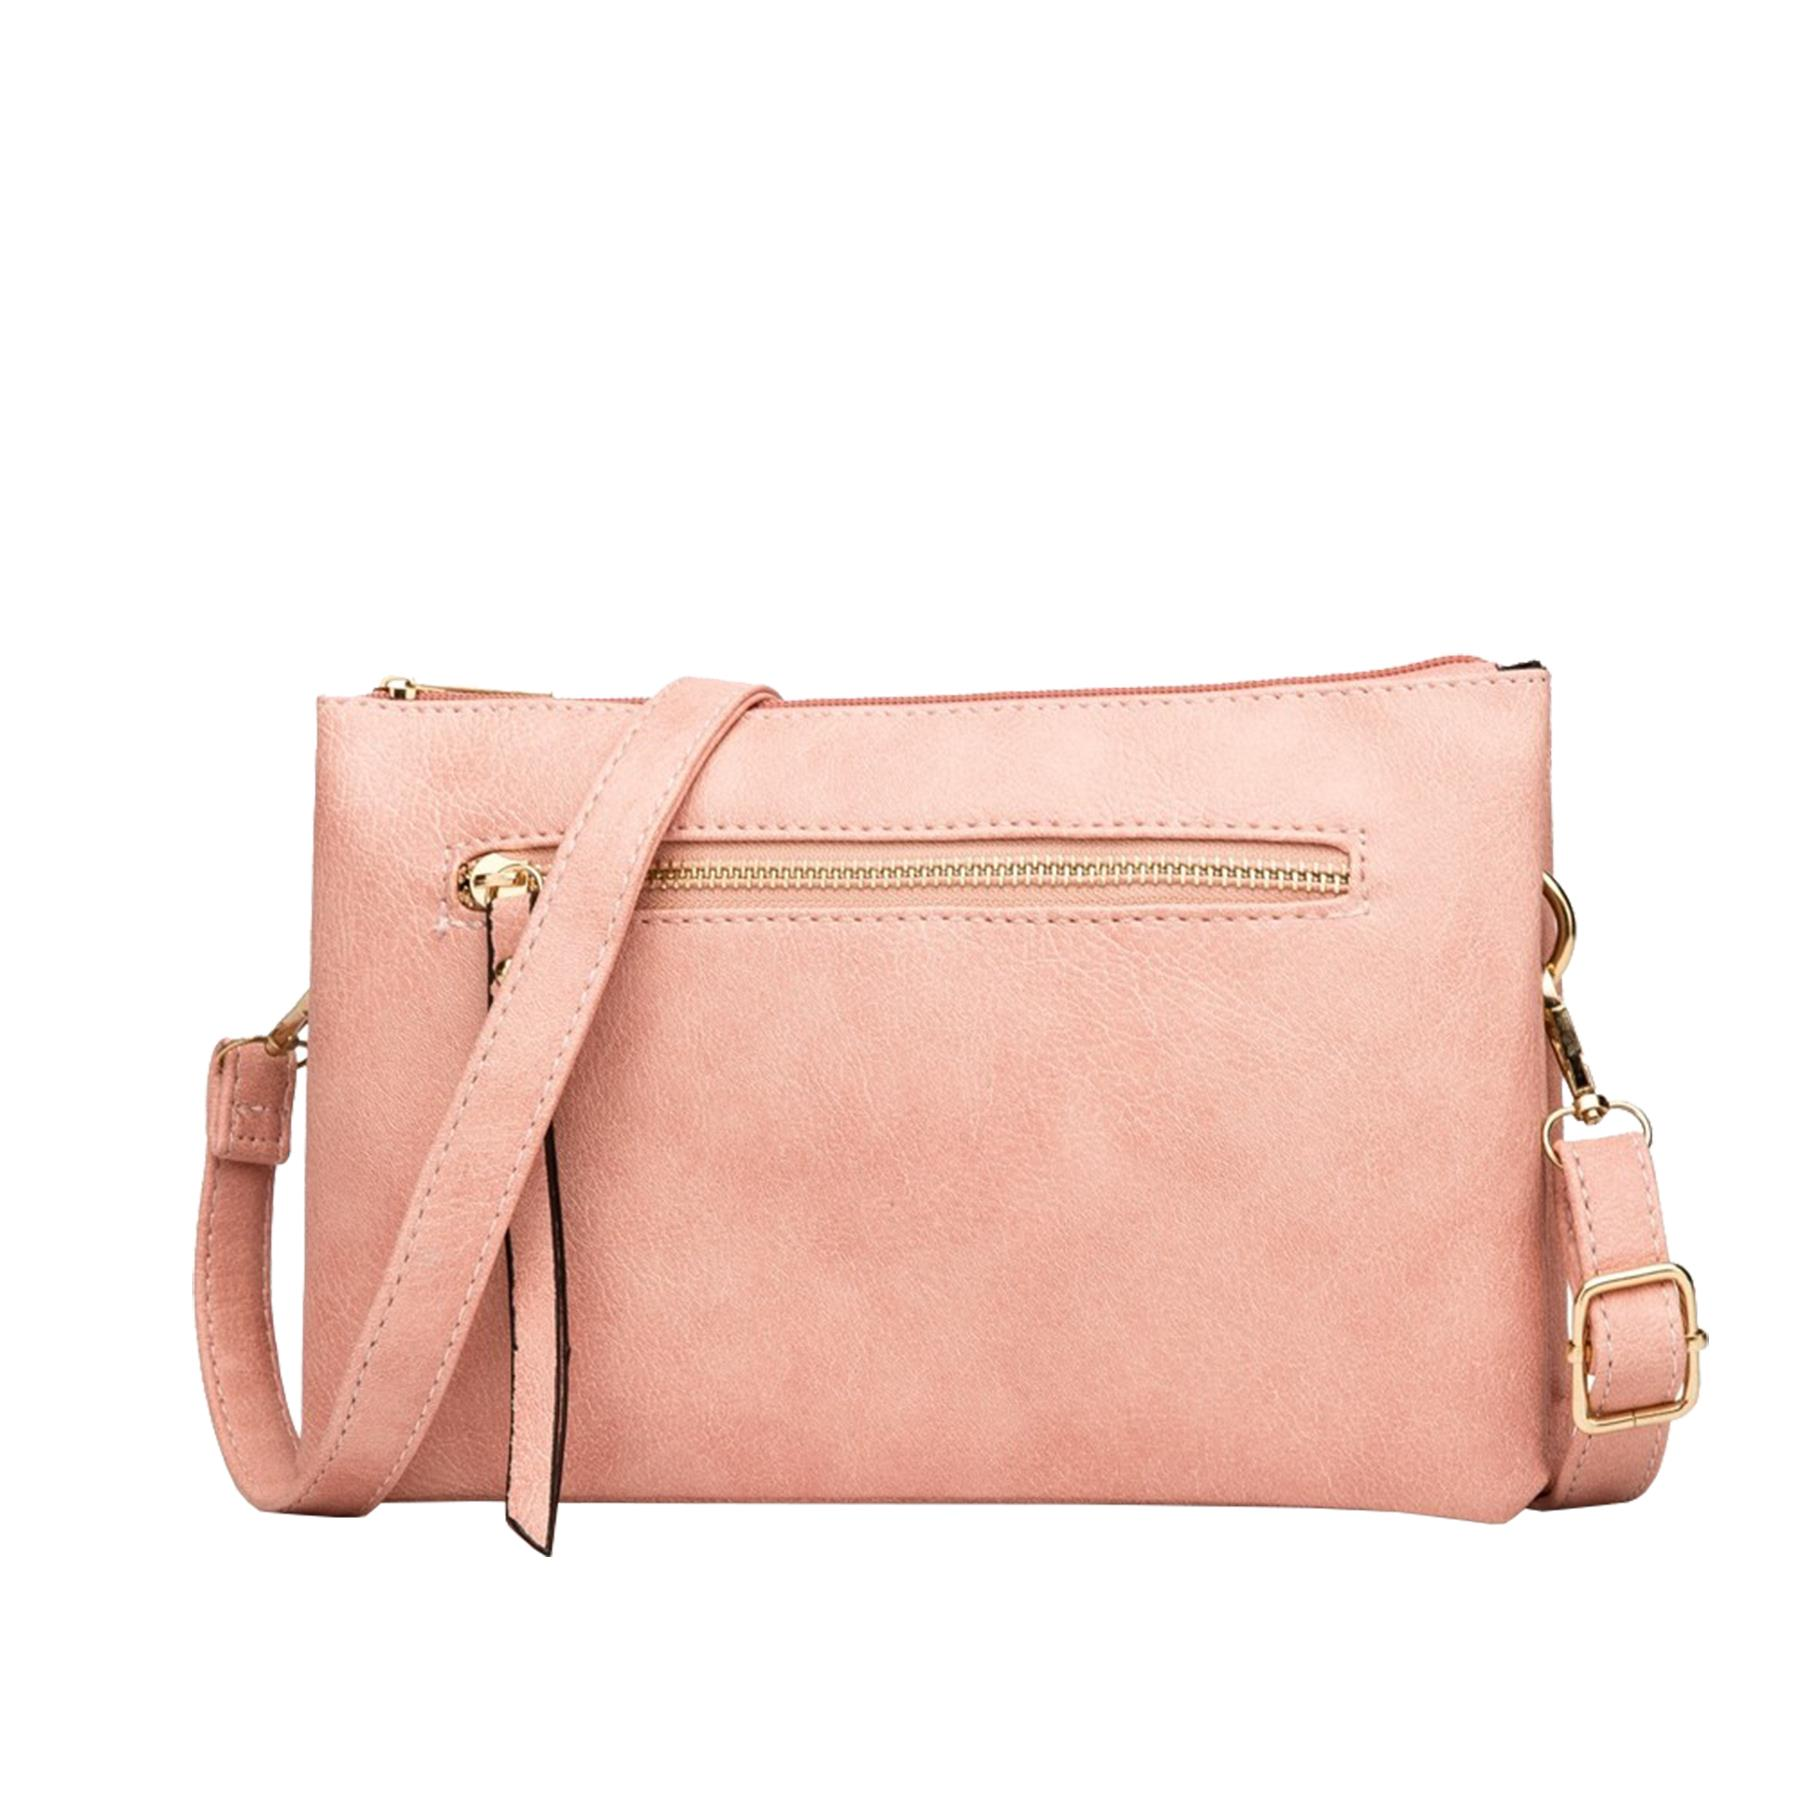 New-Plain-Synthetic-Leather-Women-s-Simple-Casual-Cross-Body-Bag thumbnail 9